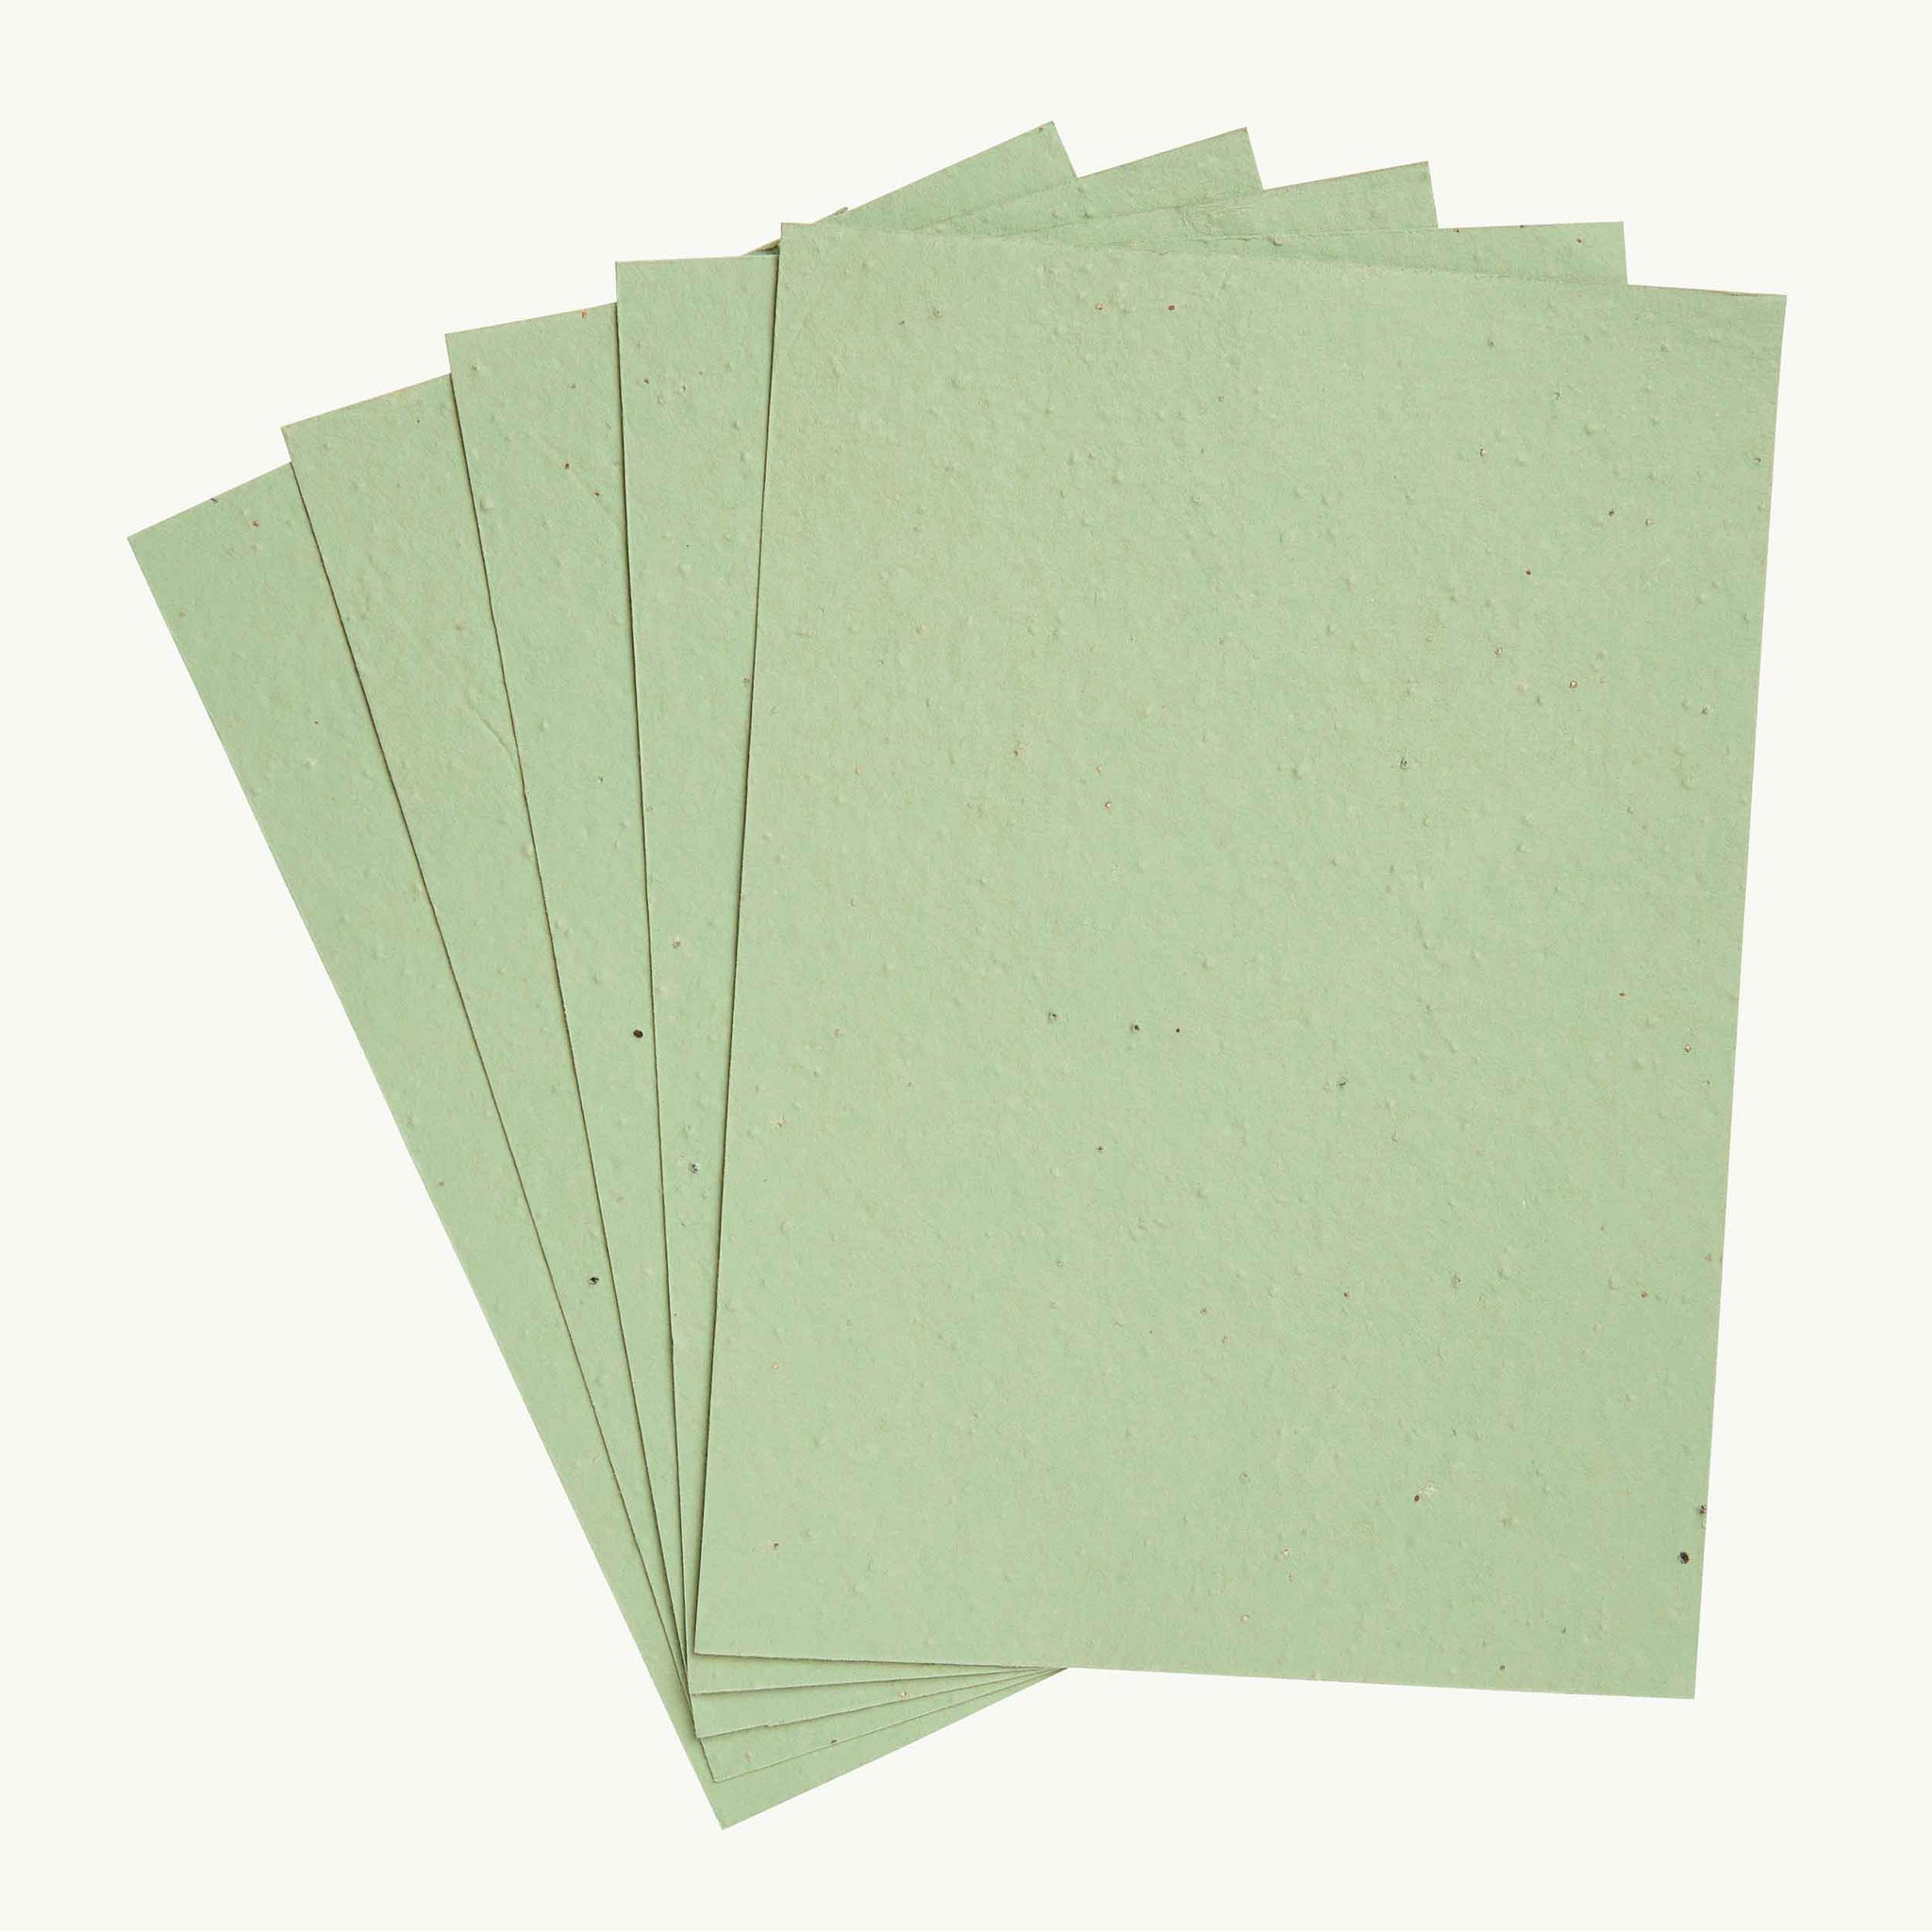 Olive Green Mixed Wildflowers Seed Paper